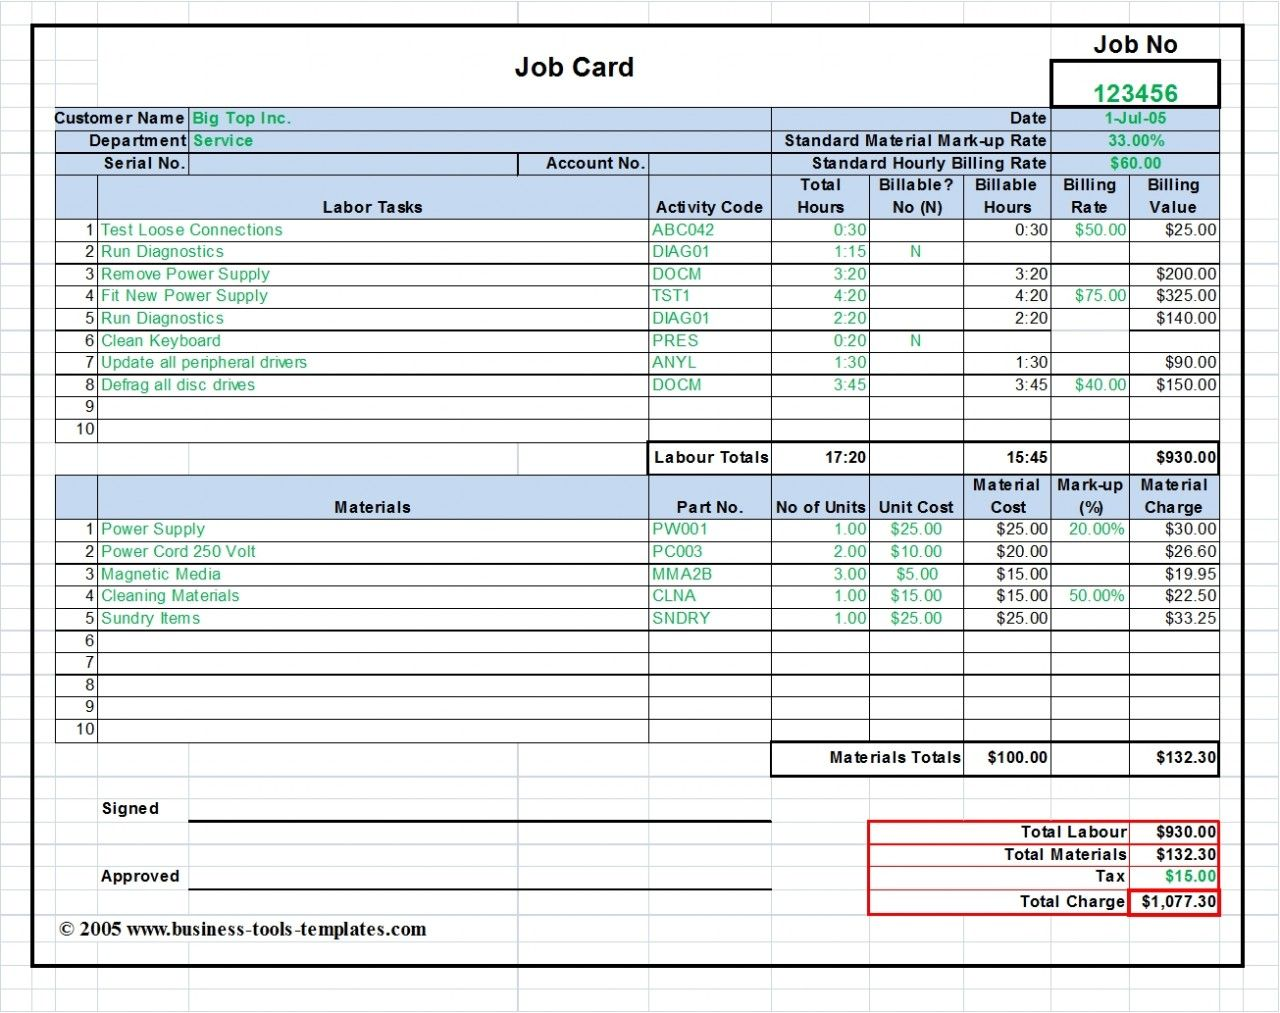 Latest Version Of The Cost Benefit Analysis Template Includes A Mortgage  Sometimes You Need To Invest In Project Just  Job Sheet Template Free Download